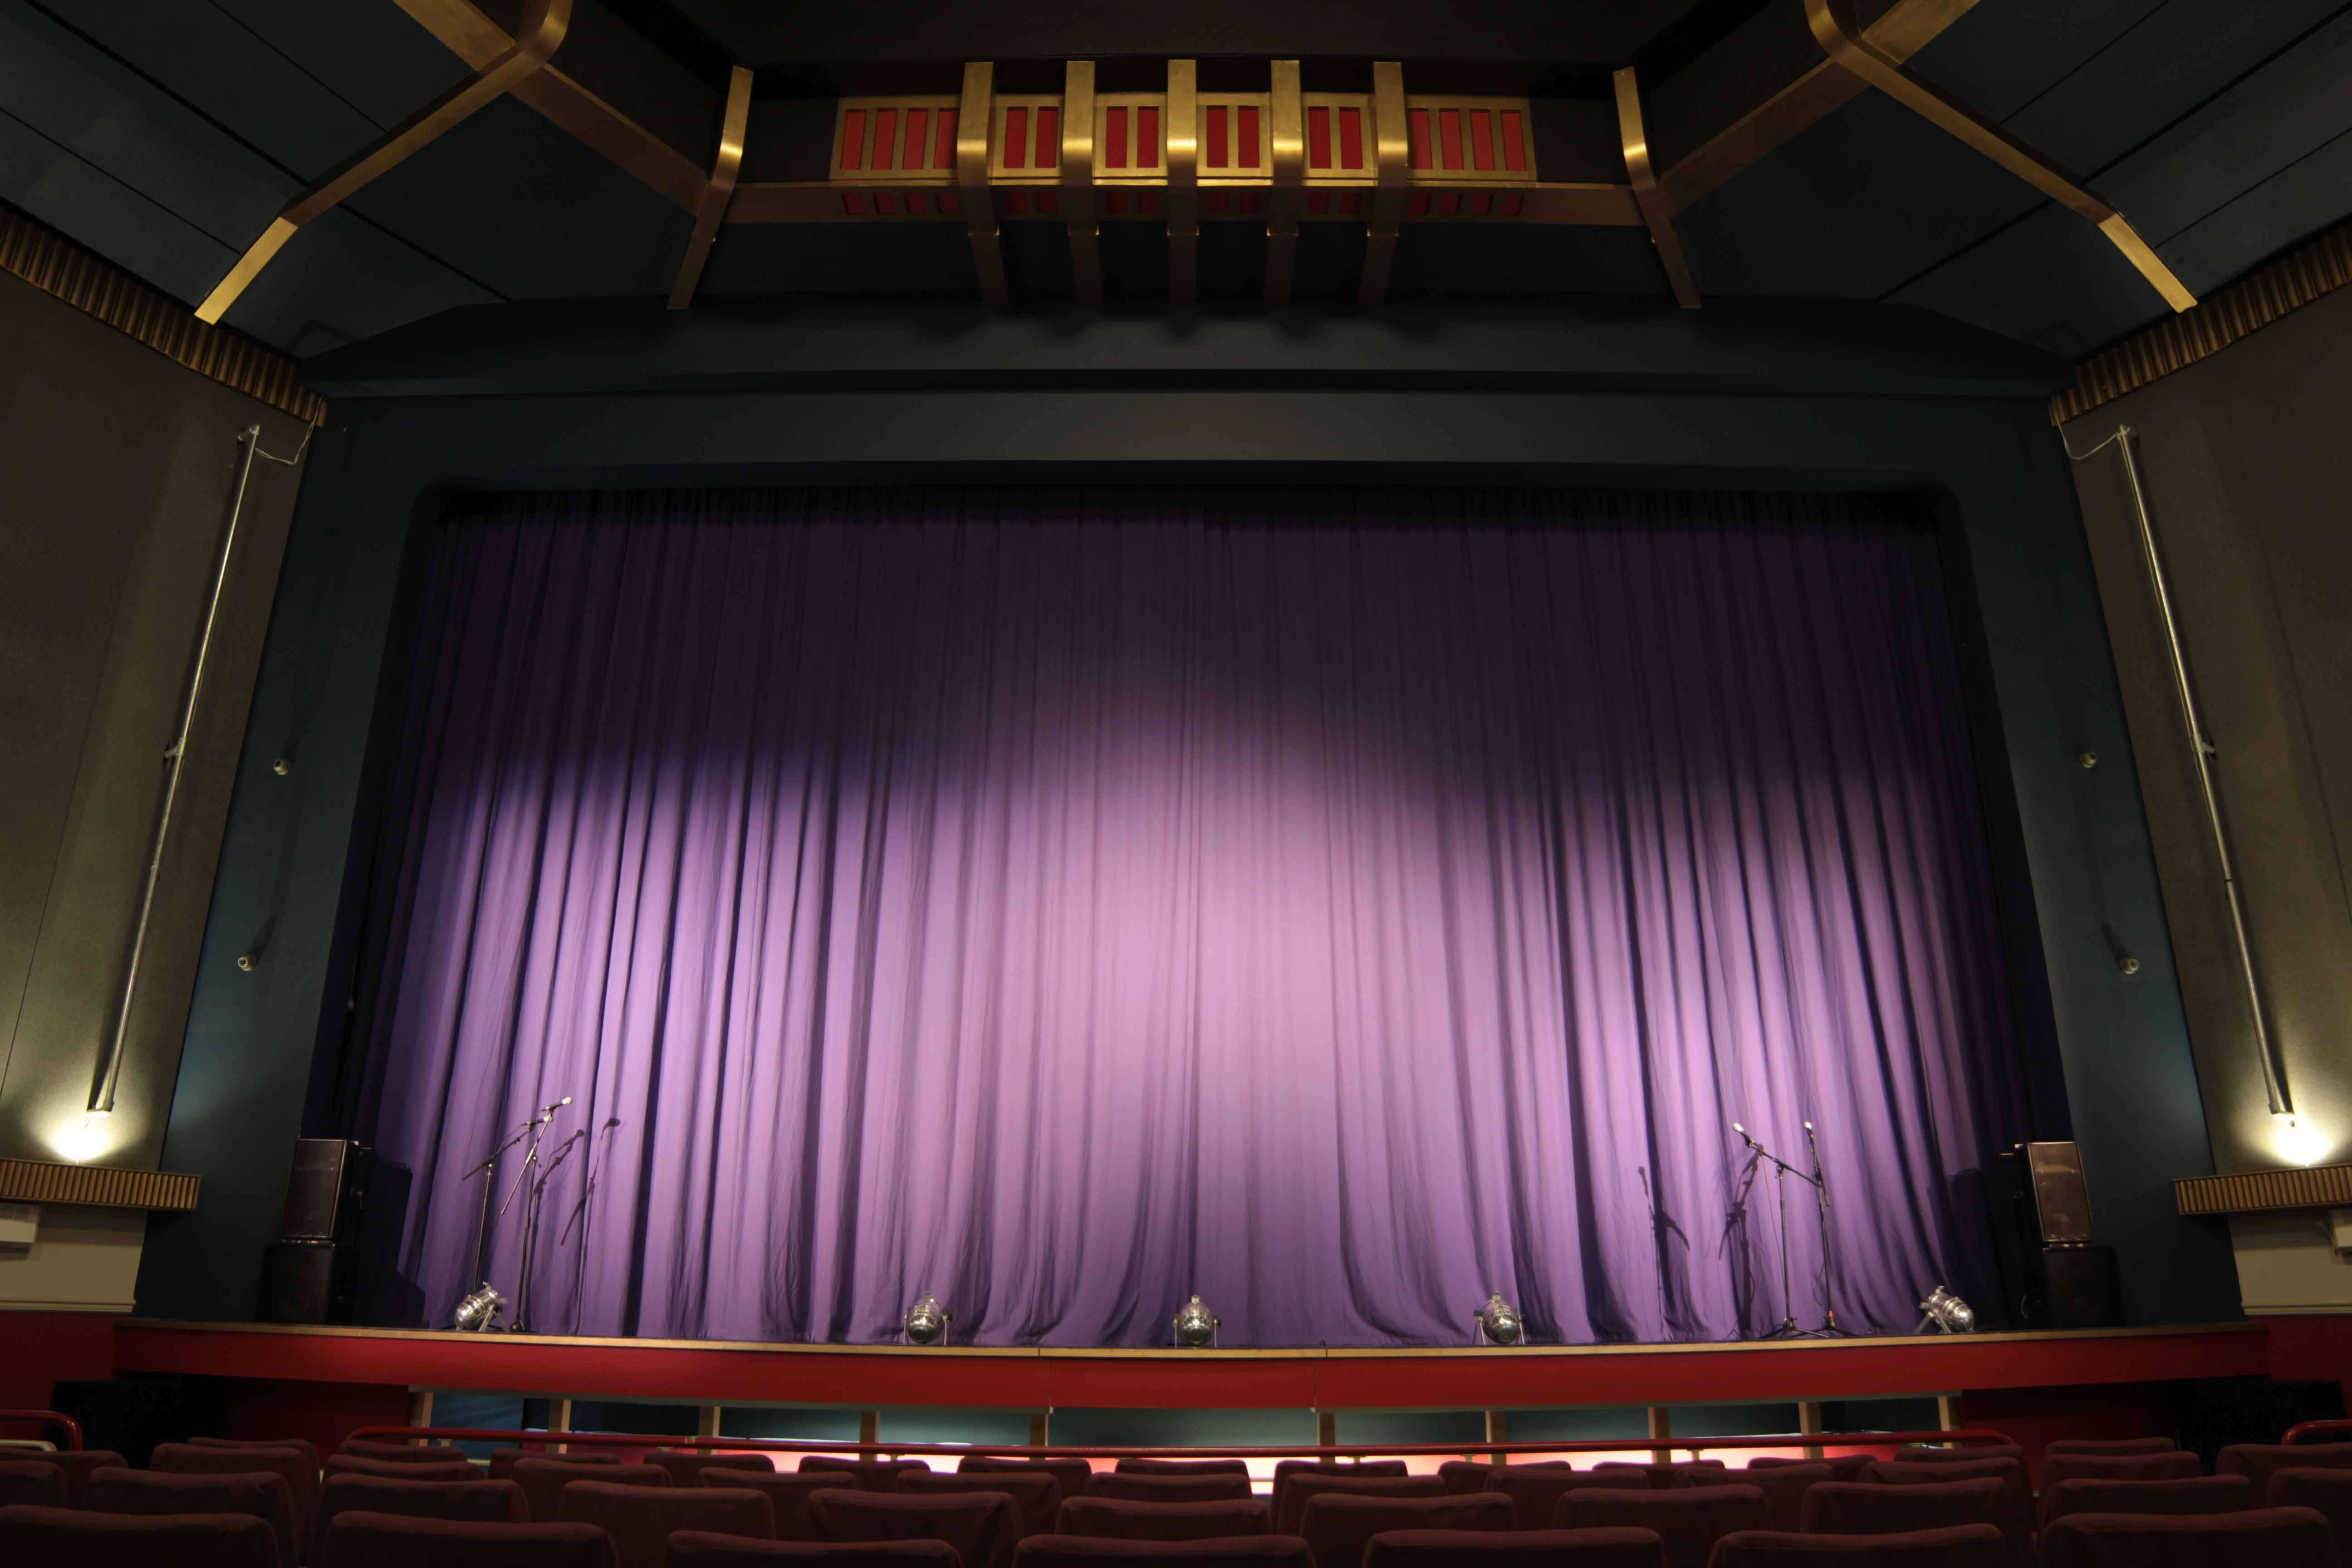 Real theater curtains - Regal Theatre Stage Jpg 5184 3456